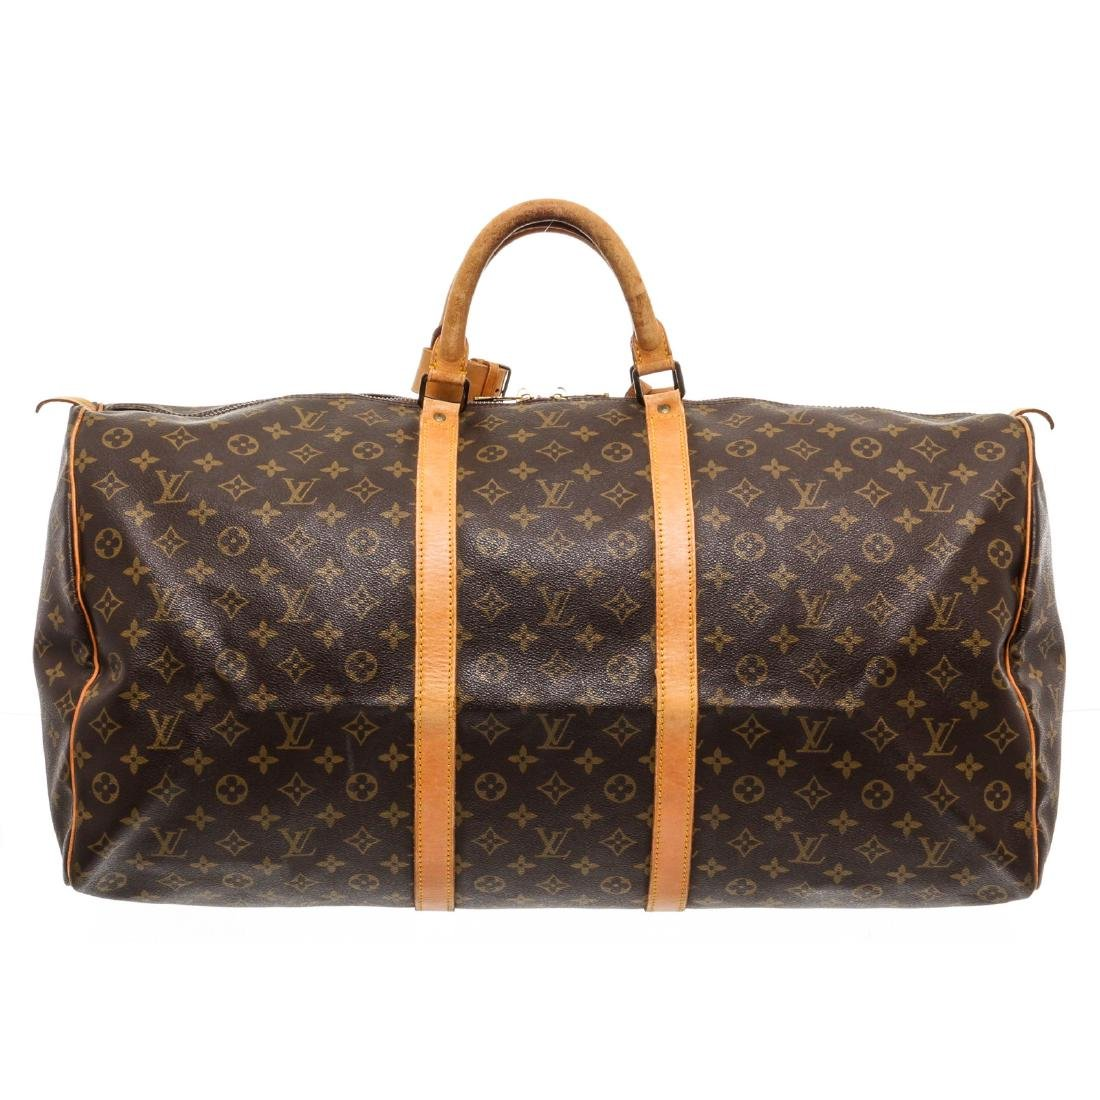 Louis Vuitton Monogram Canvas Leather Keepall 60 cm